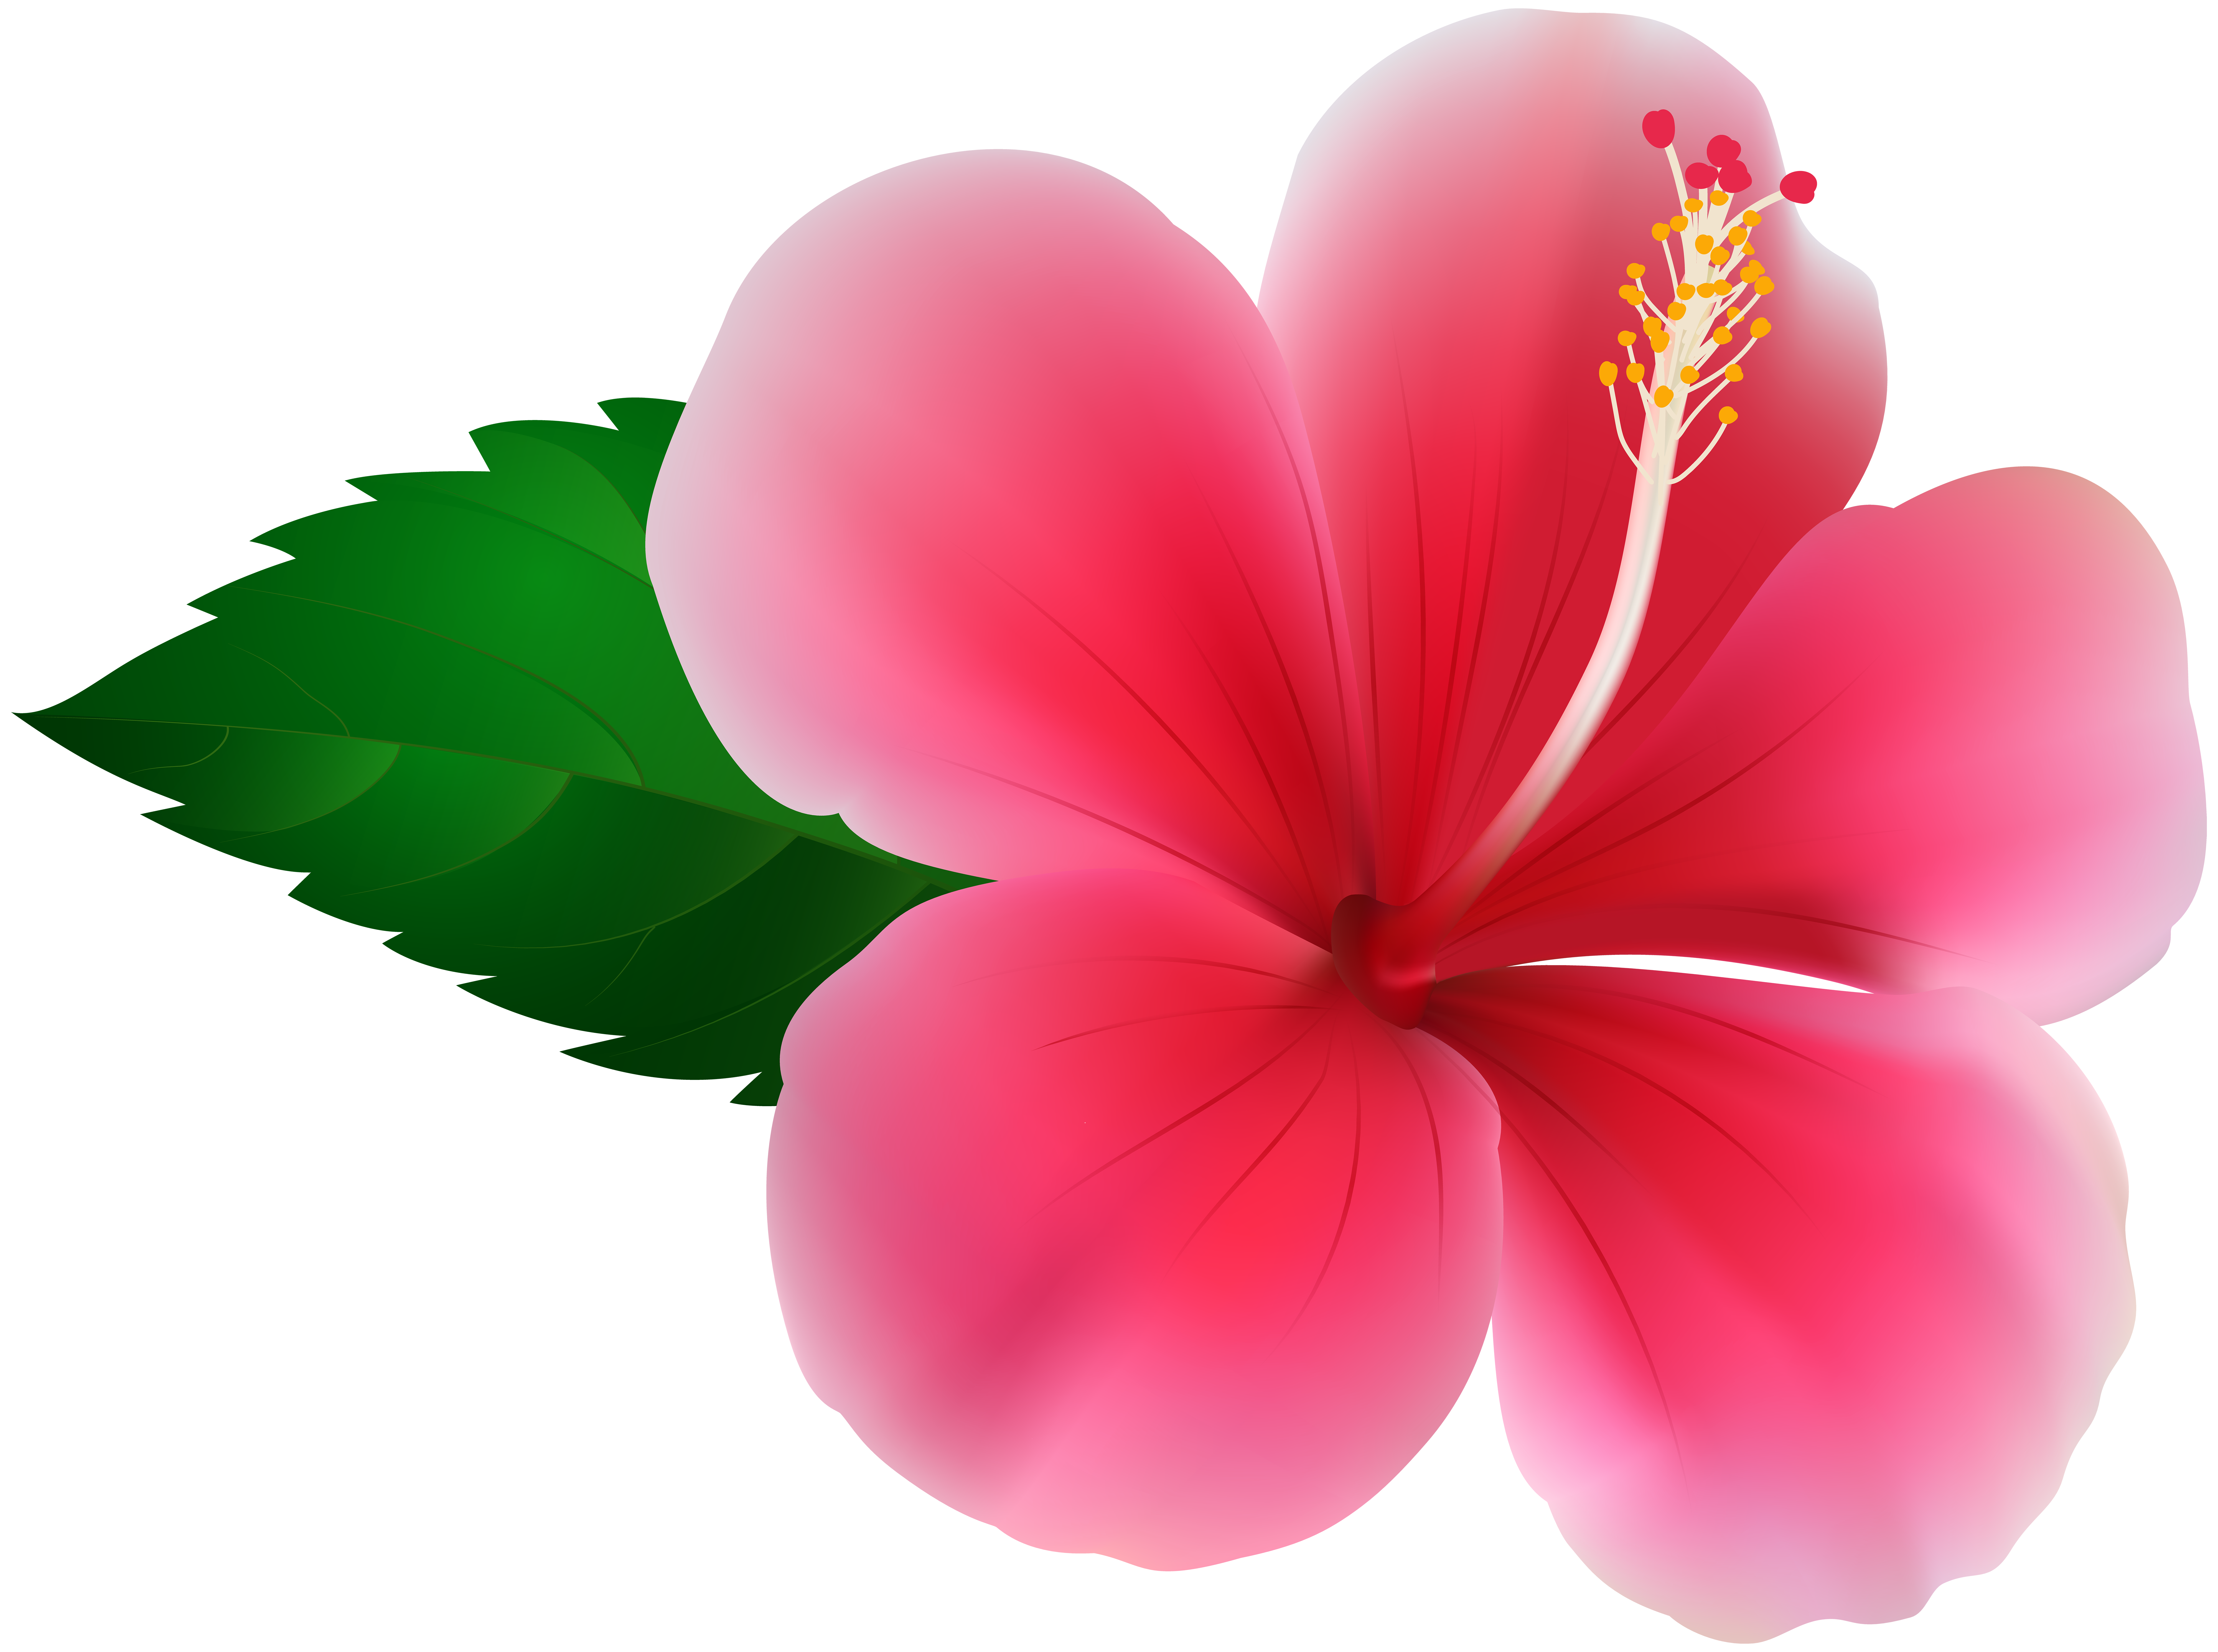 Free hibiscus flower clipart free download Hibiscus Flower Royalty-free Clip art - pink flowers 8000*5960 ... free download